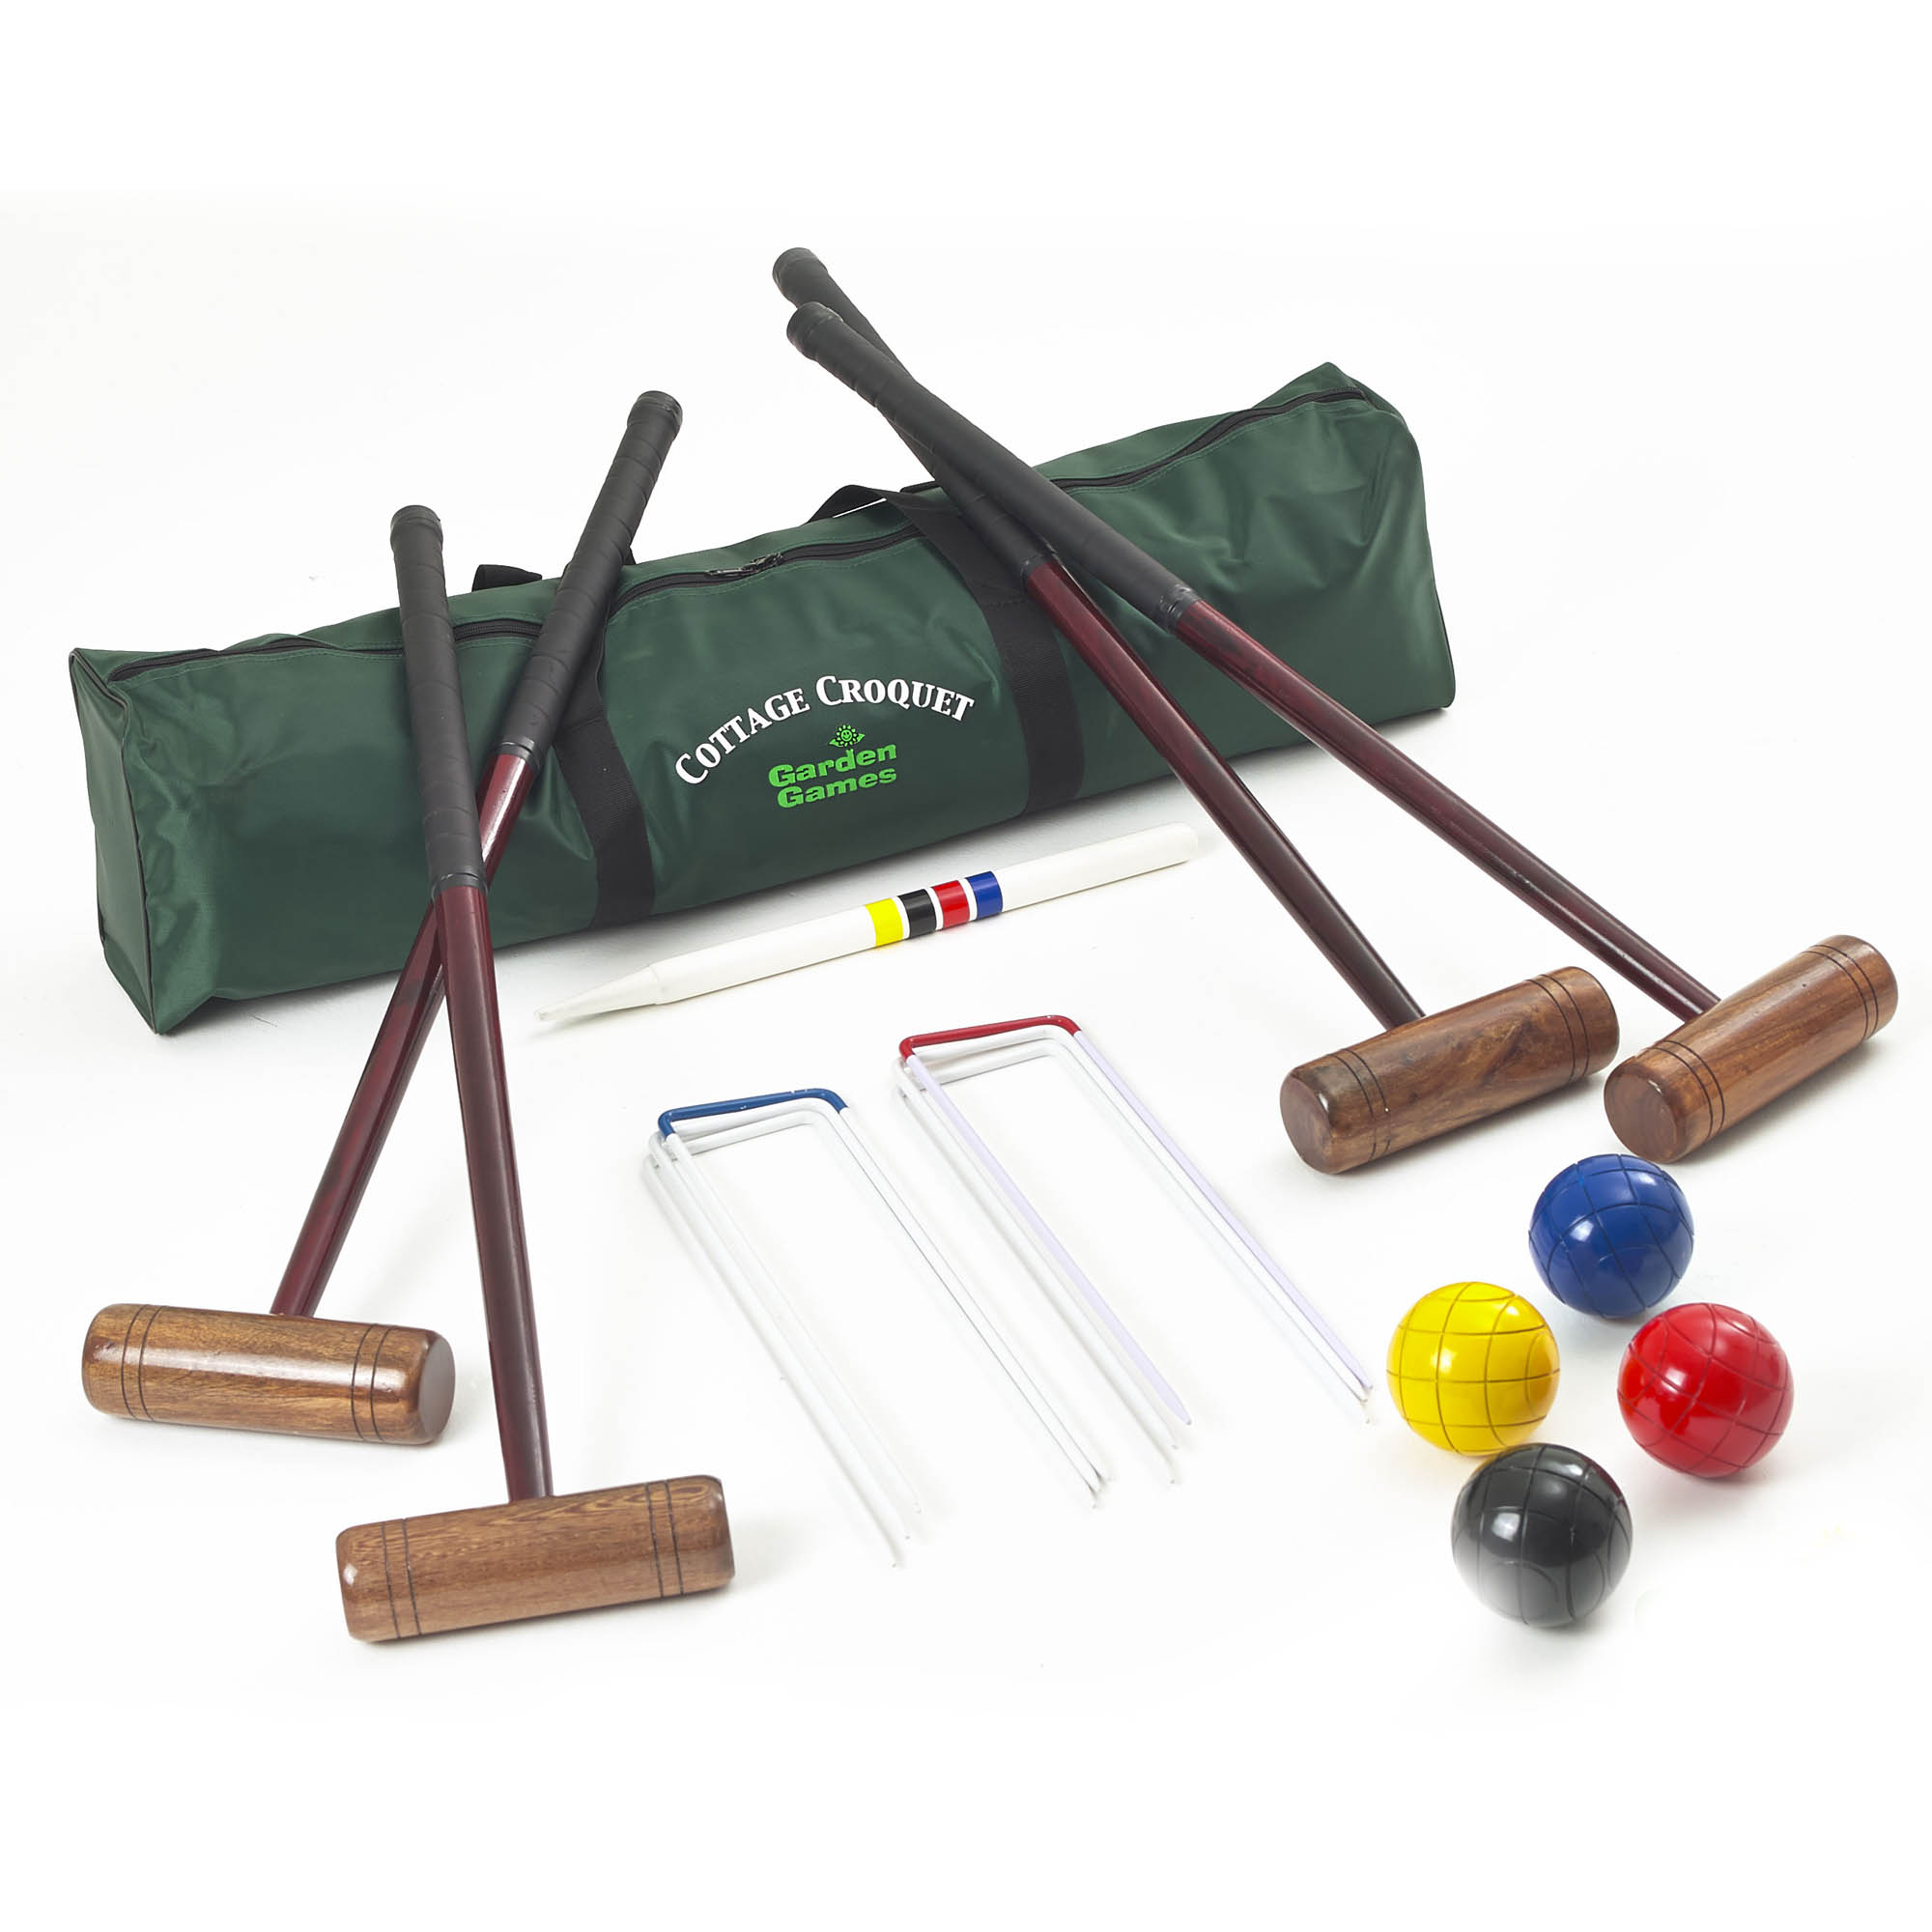 Croquet Game : garden_games_cottage_croquet_garden_games_cottage_croquetaz.jpg